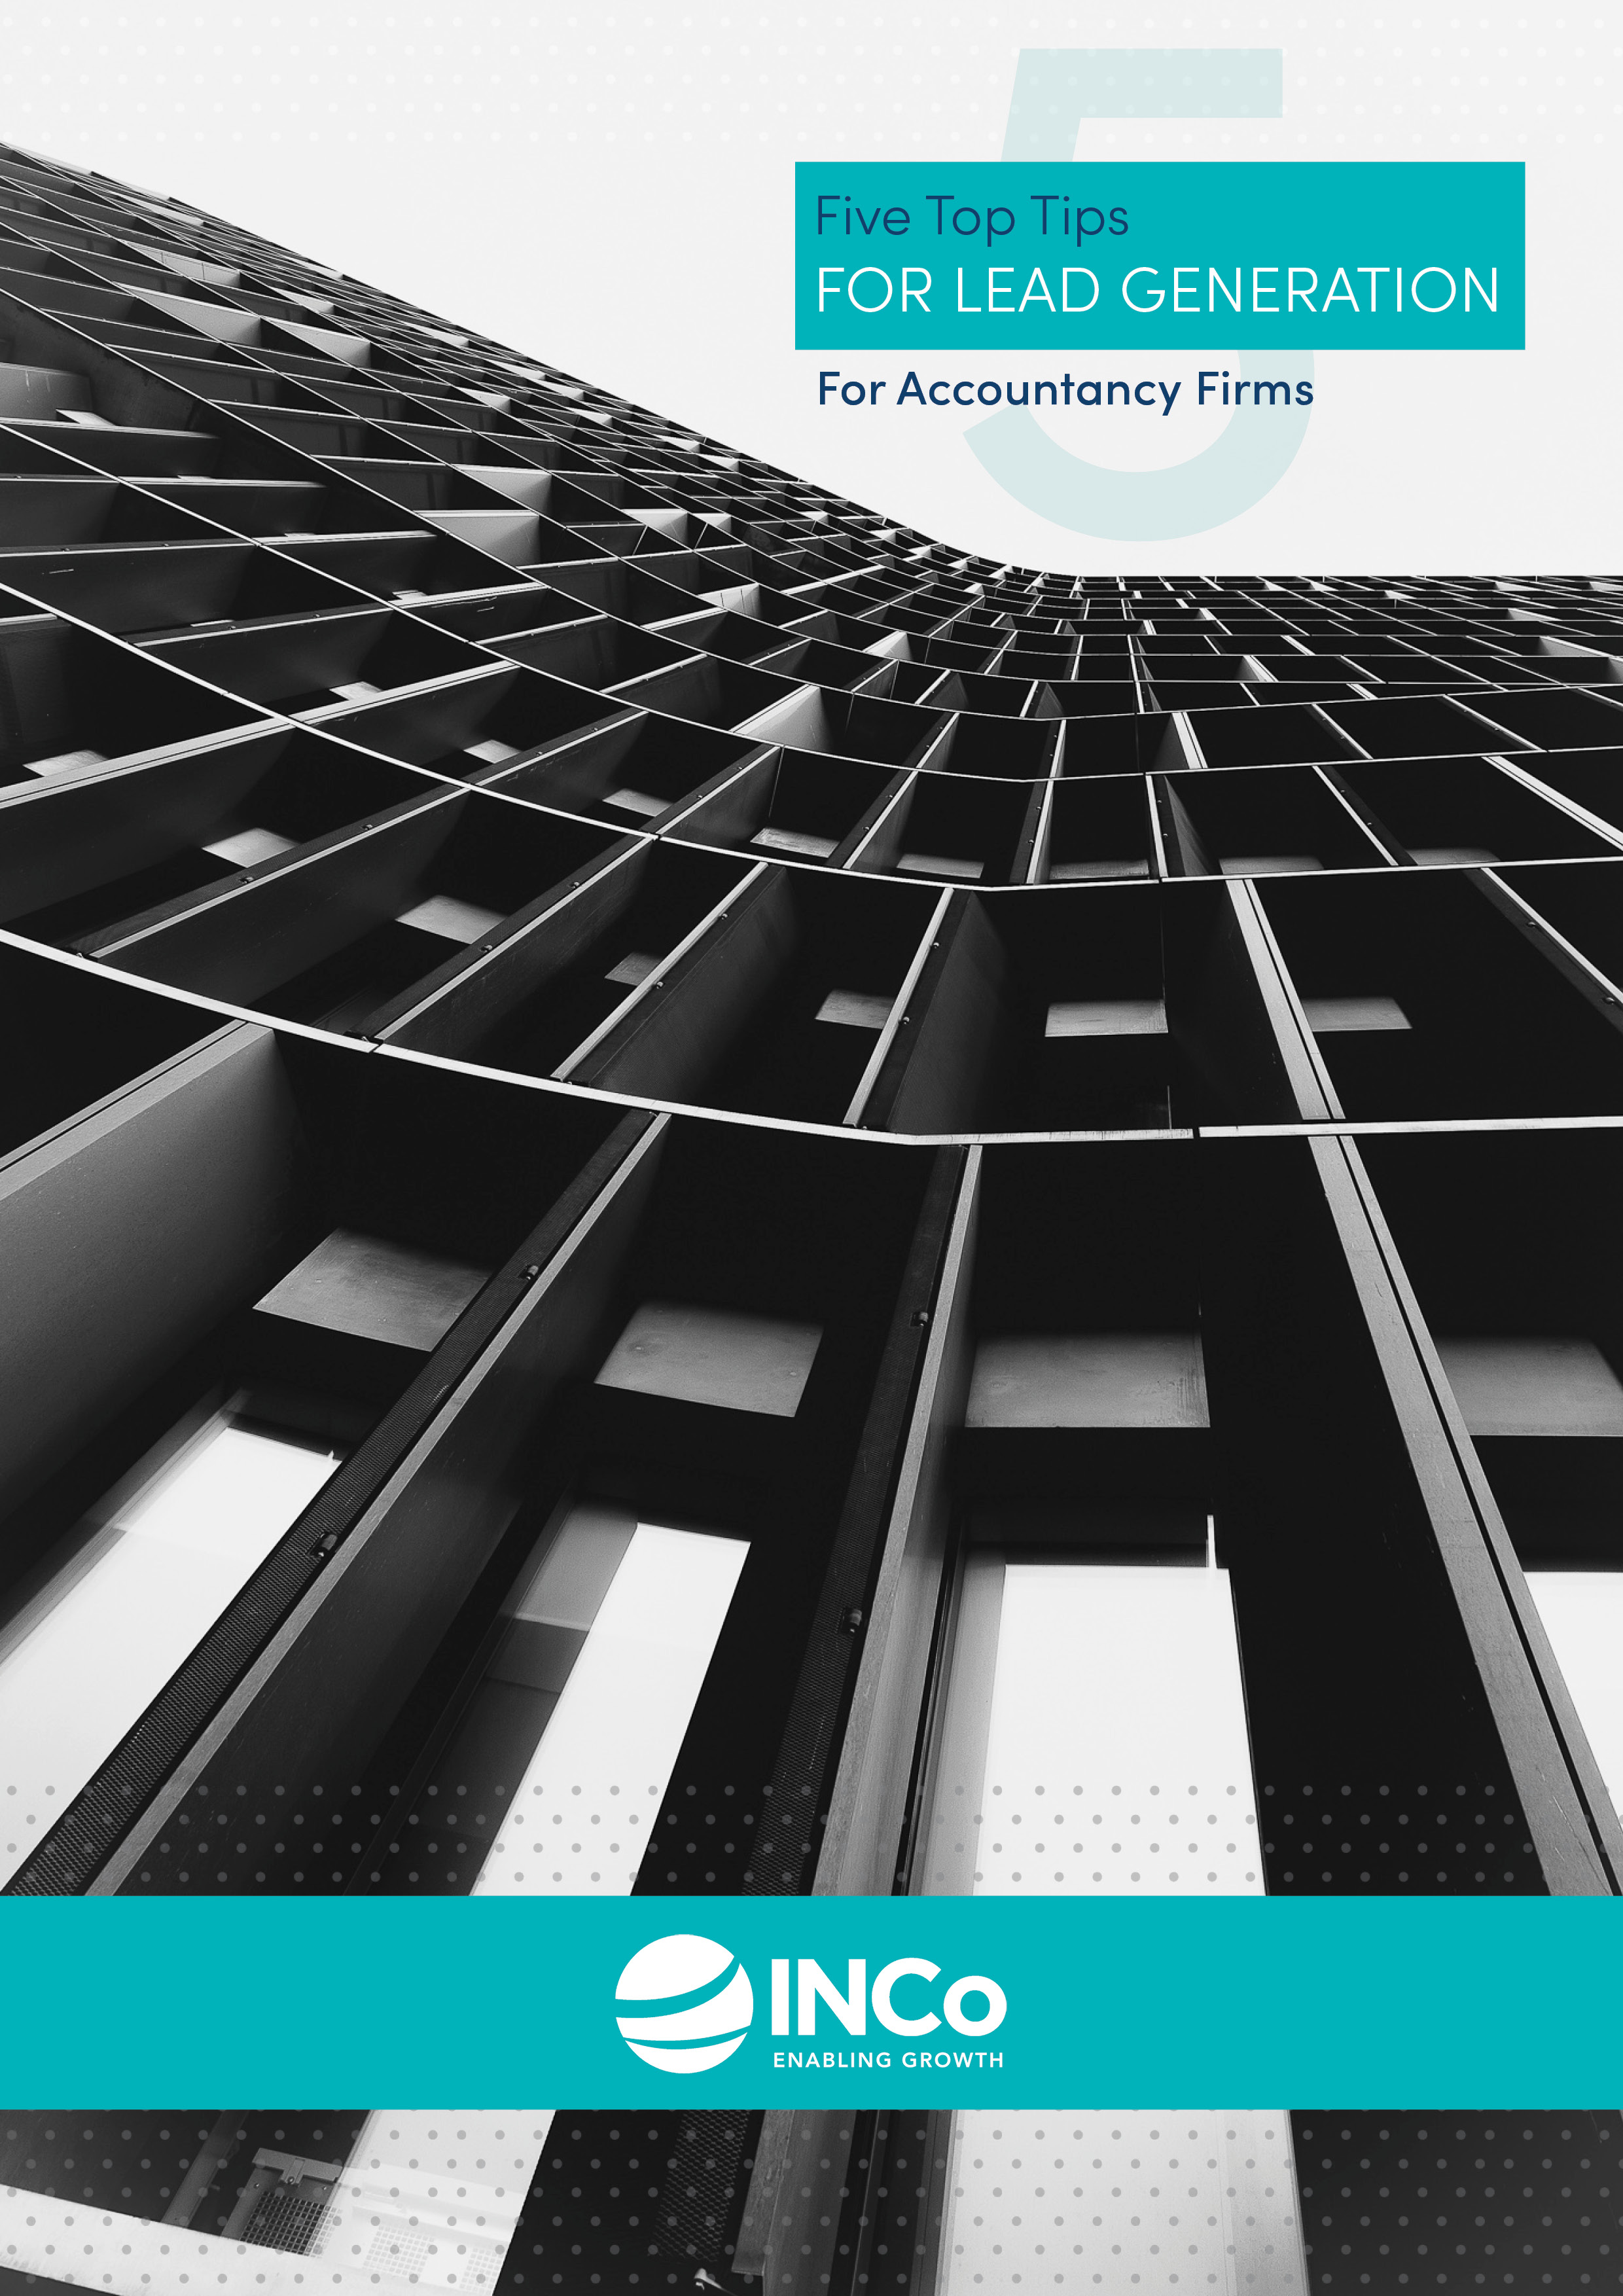 INCo-eBook-Five Top Tips for Lead Generation for Accountancy Firms-Portrait